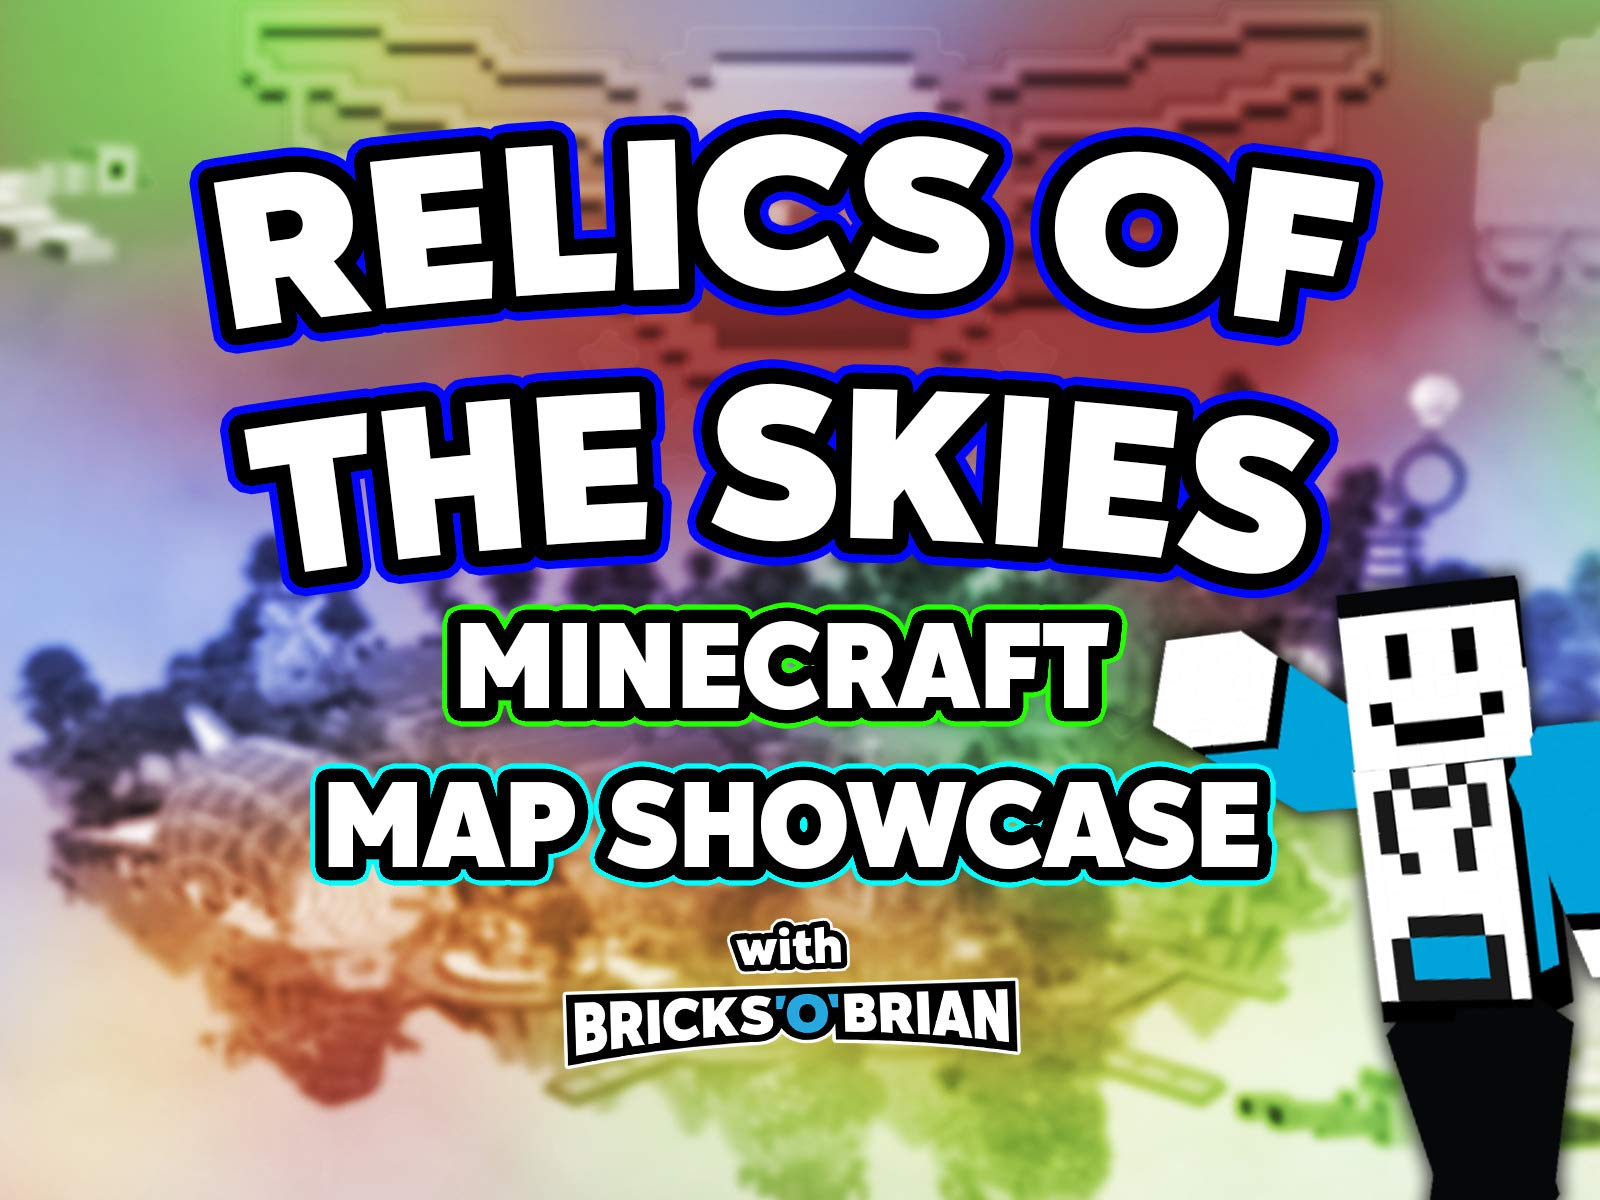 Clip: Relics of the Skies Minecraft Map Showcase with Bricks 'O' Brian! - Season 1